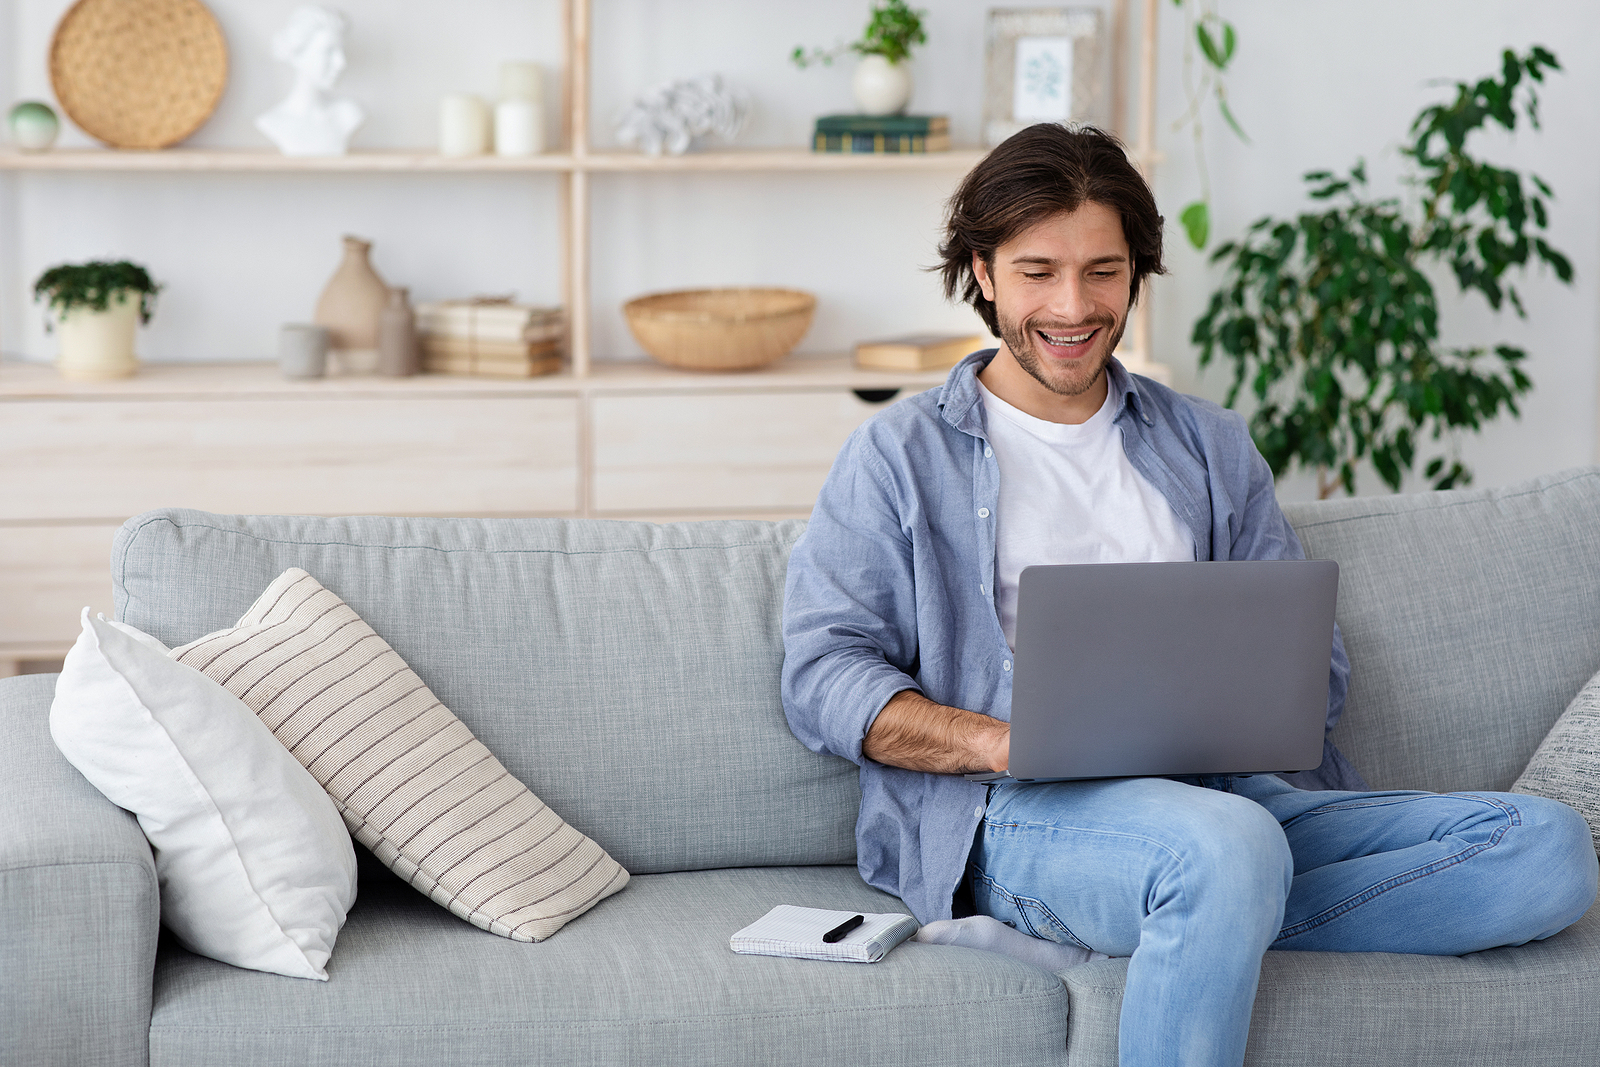 What Are the Best Online Jobs from Home Without an Investment?